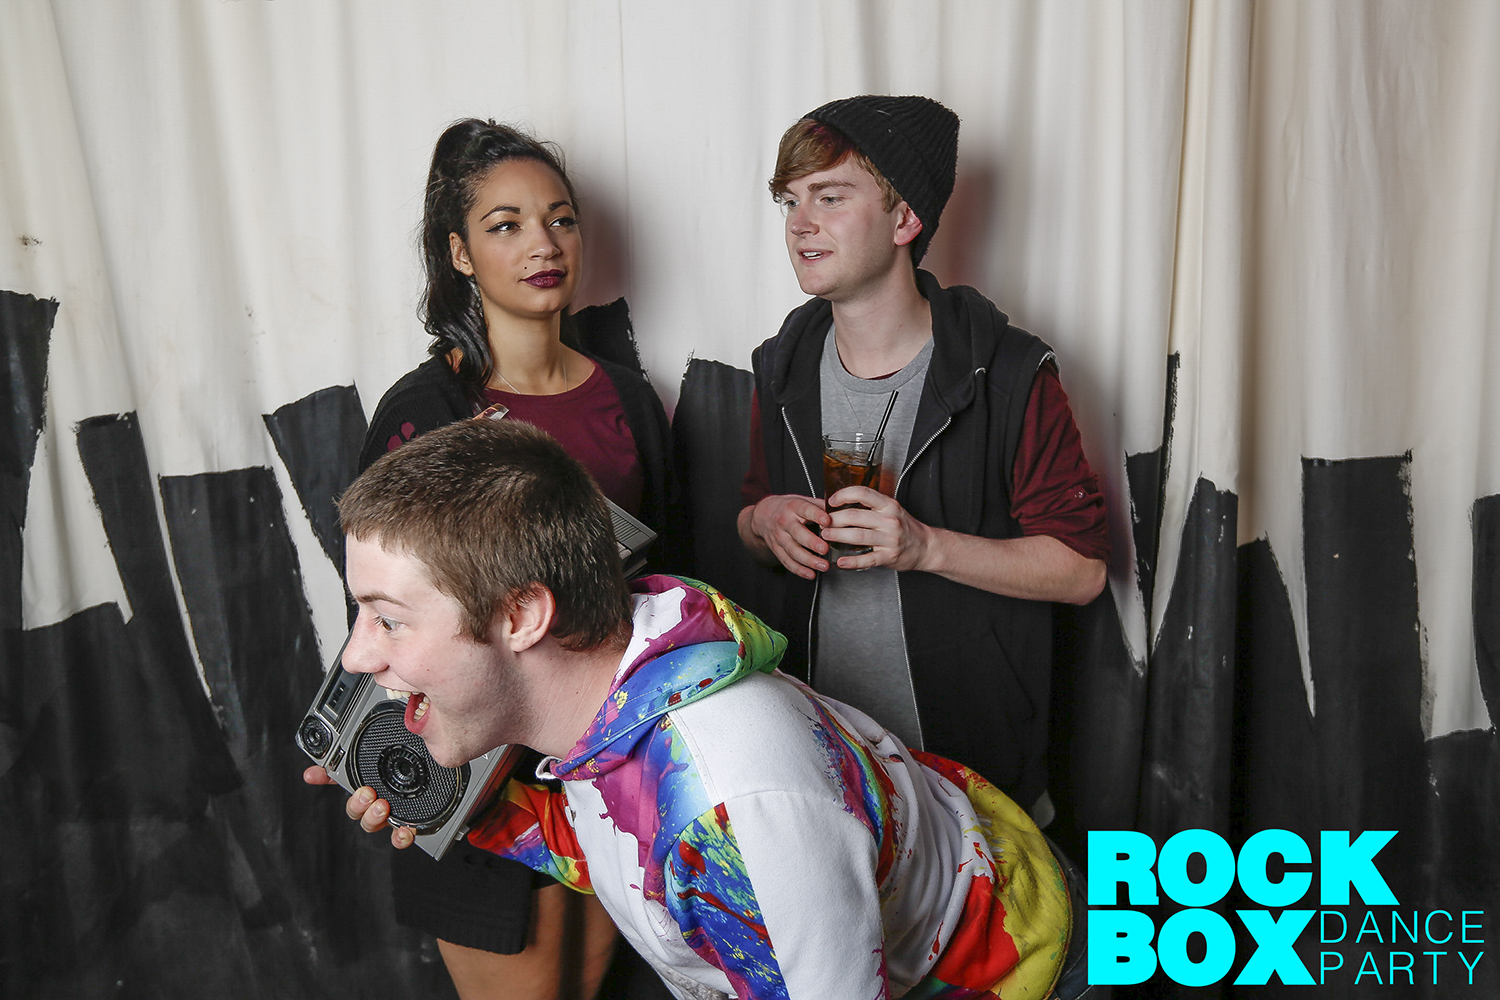 Rock box feb 2015-0100.jpg